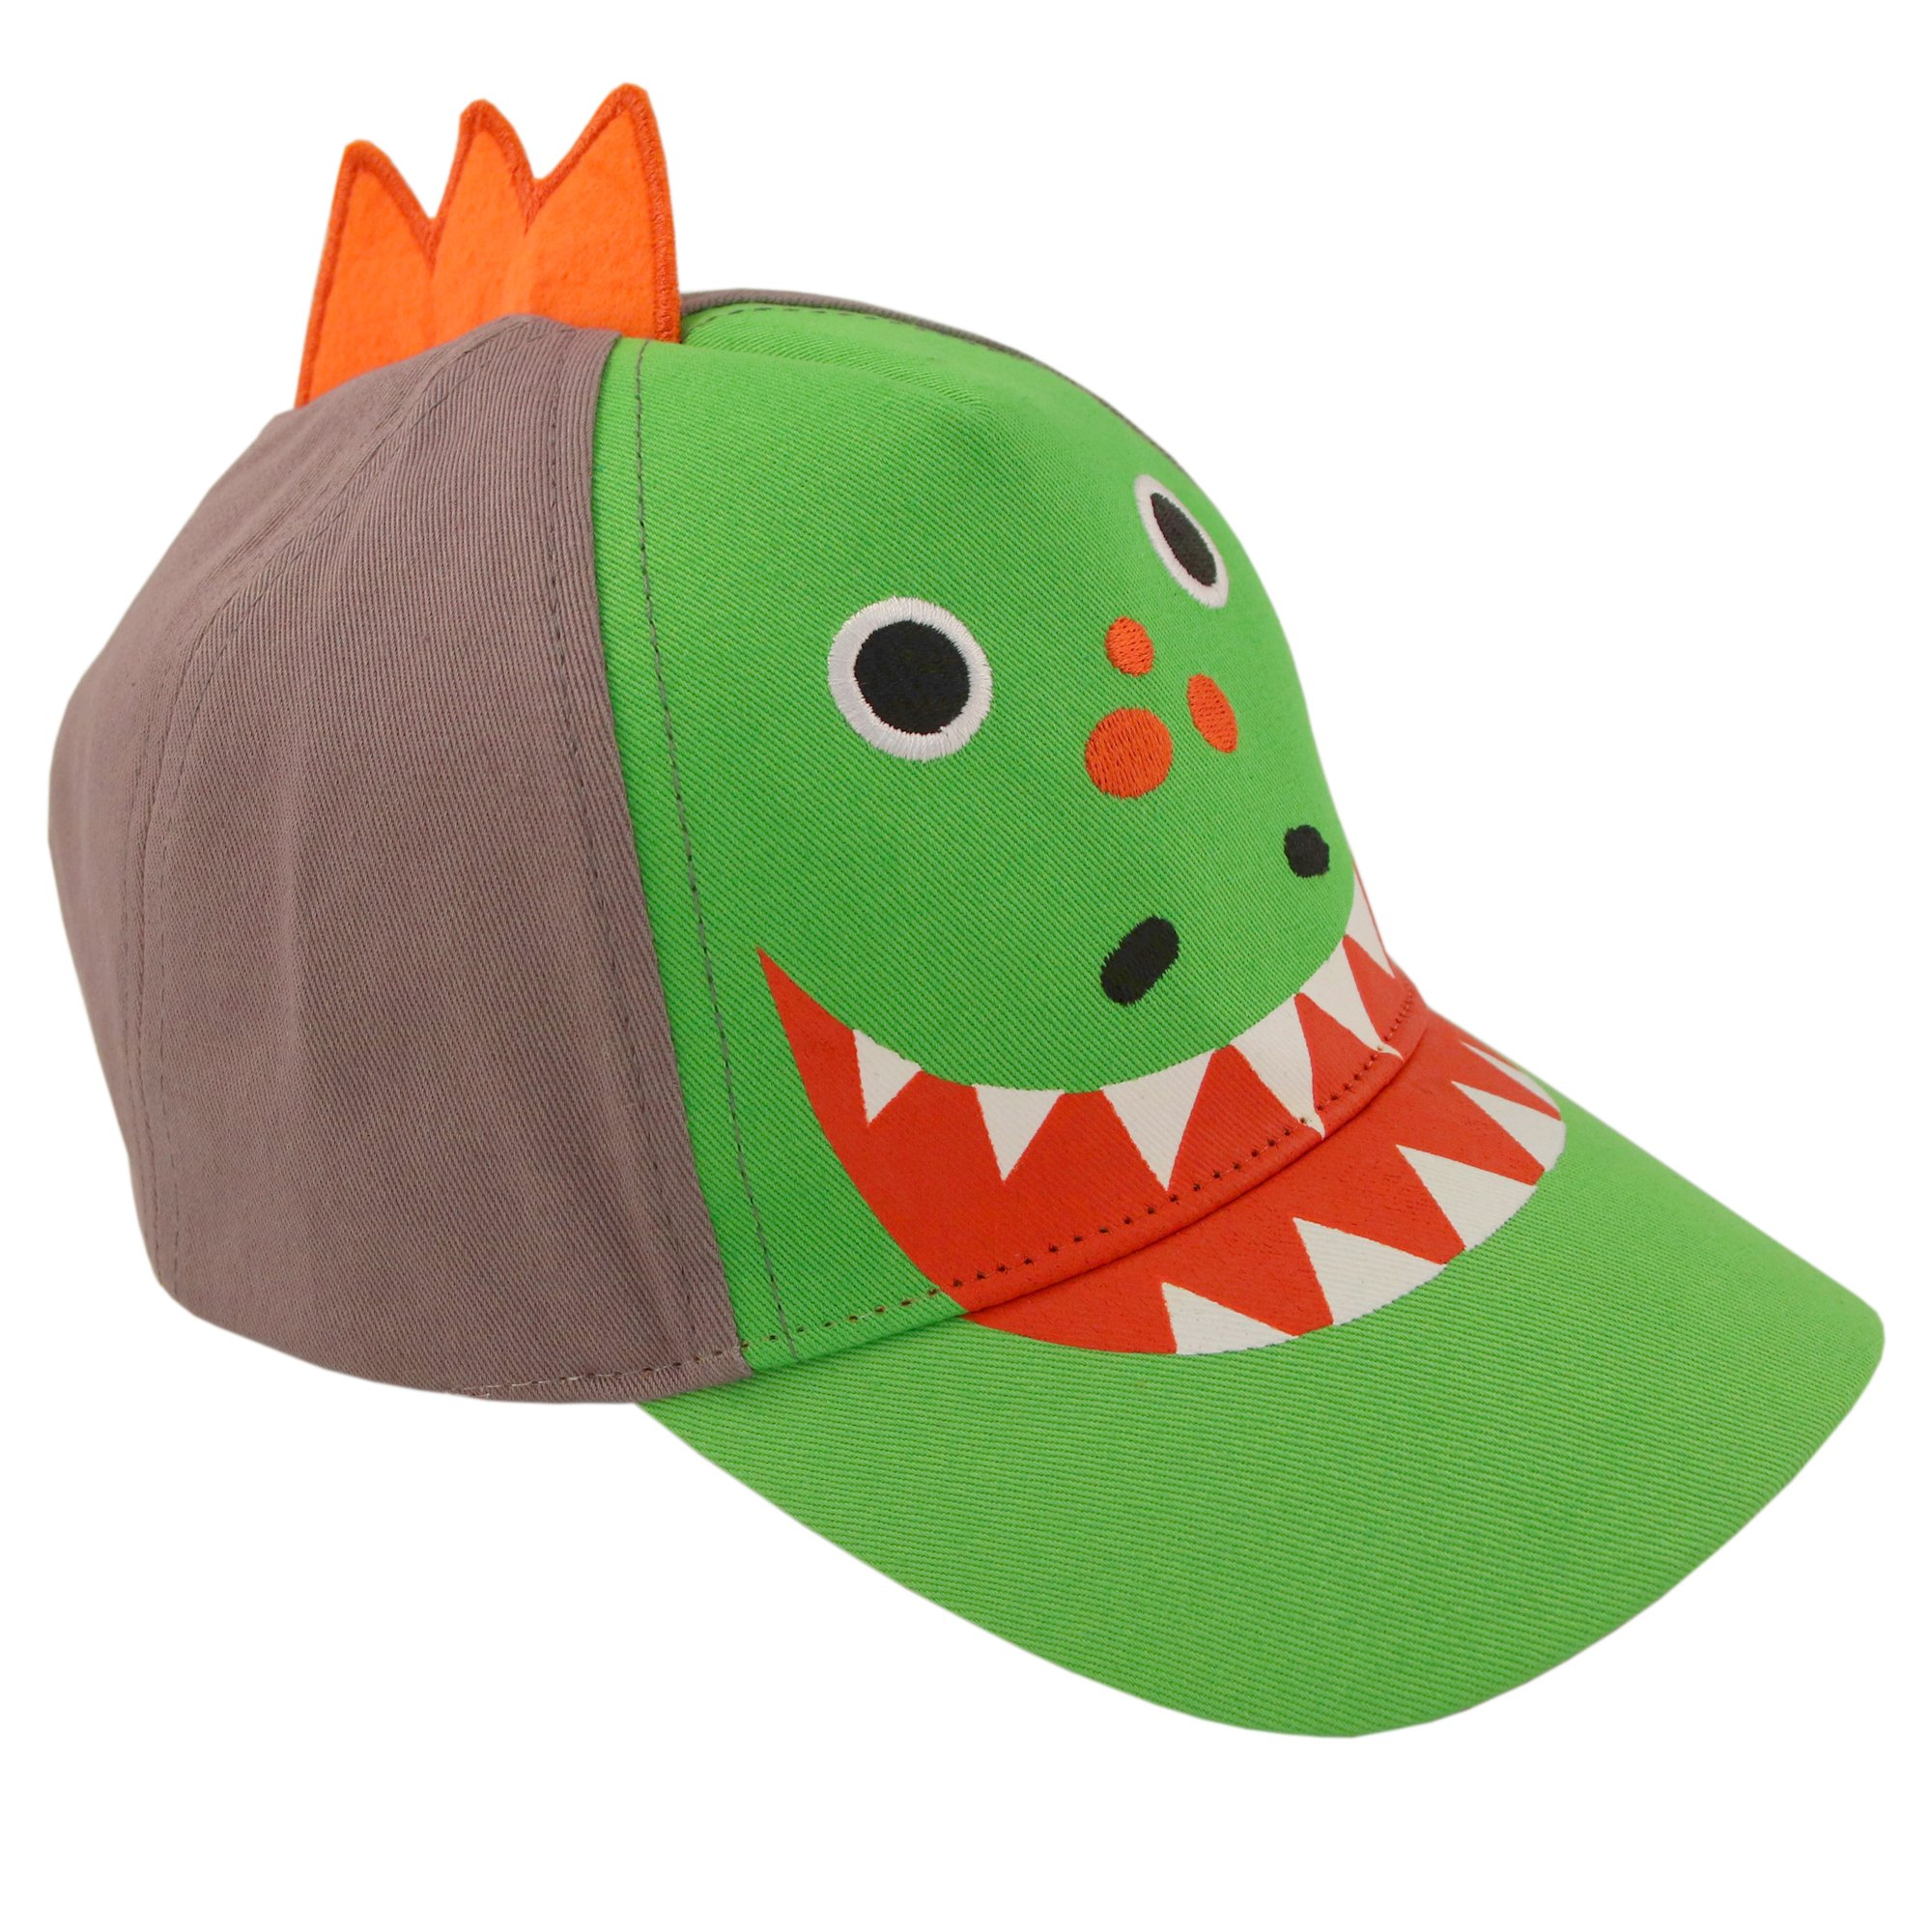 ABG Accessories Toddler Boys Cotton Baseball Cap with Assorted Animal Critter Designs, Age 2-4 (Dinosaur Design – Green/Grey) by ABG Accessories (Image #5)